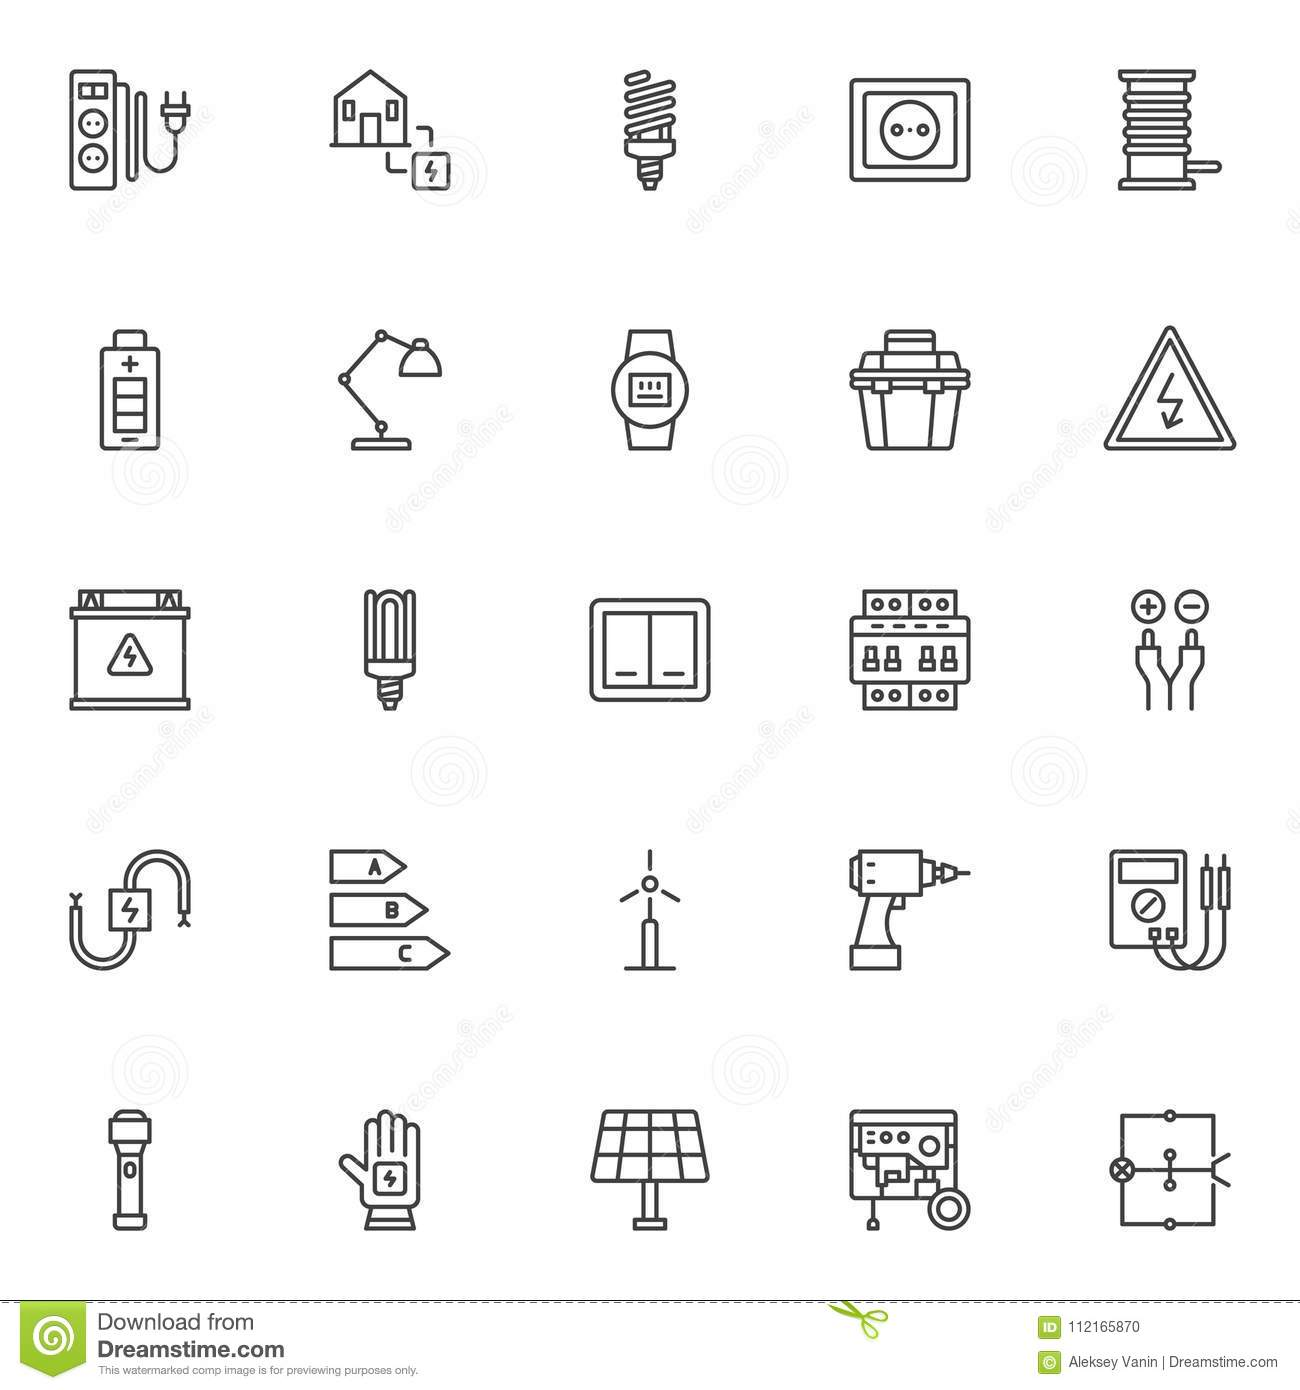 Electrician Outline Icons Set Stock Vector - Illustration of circuit ...